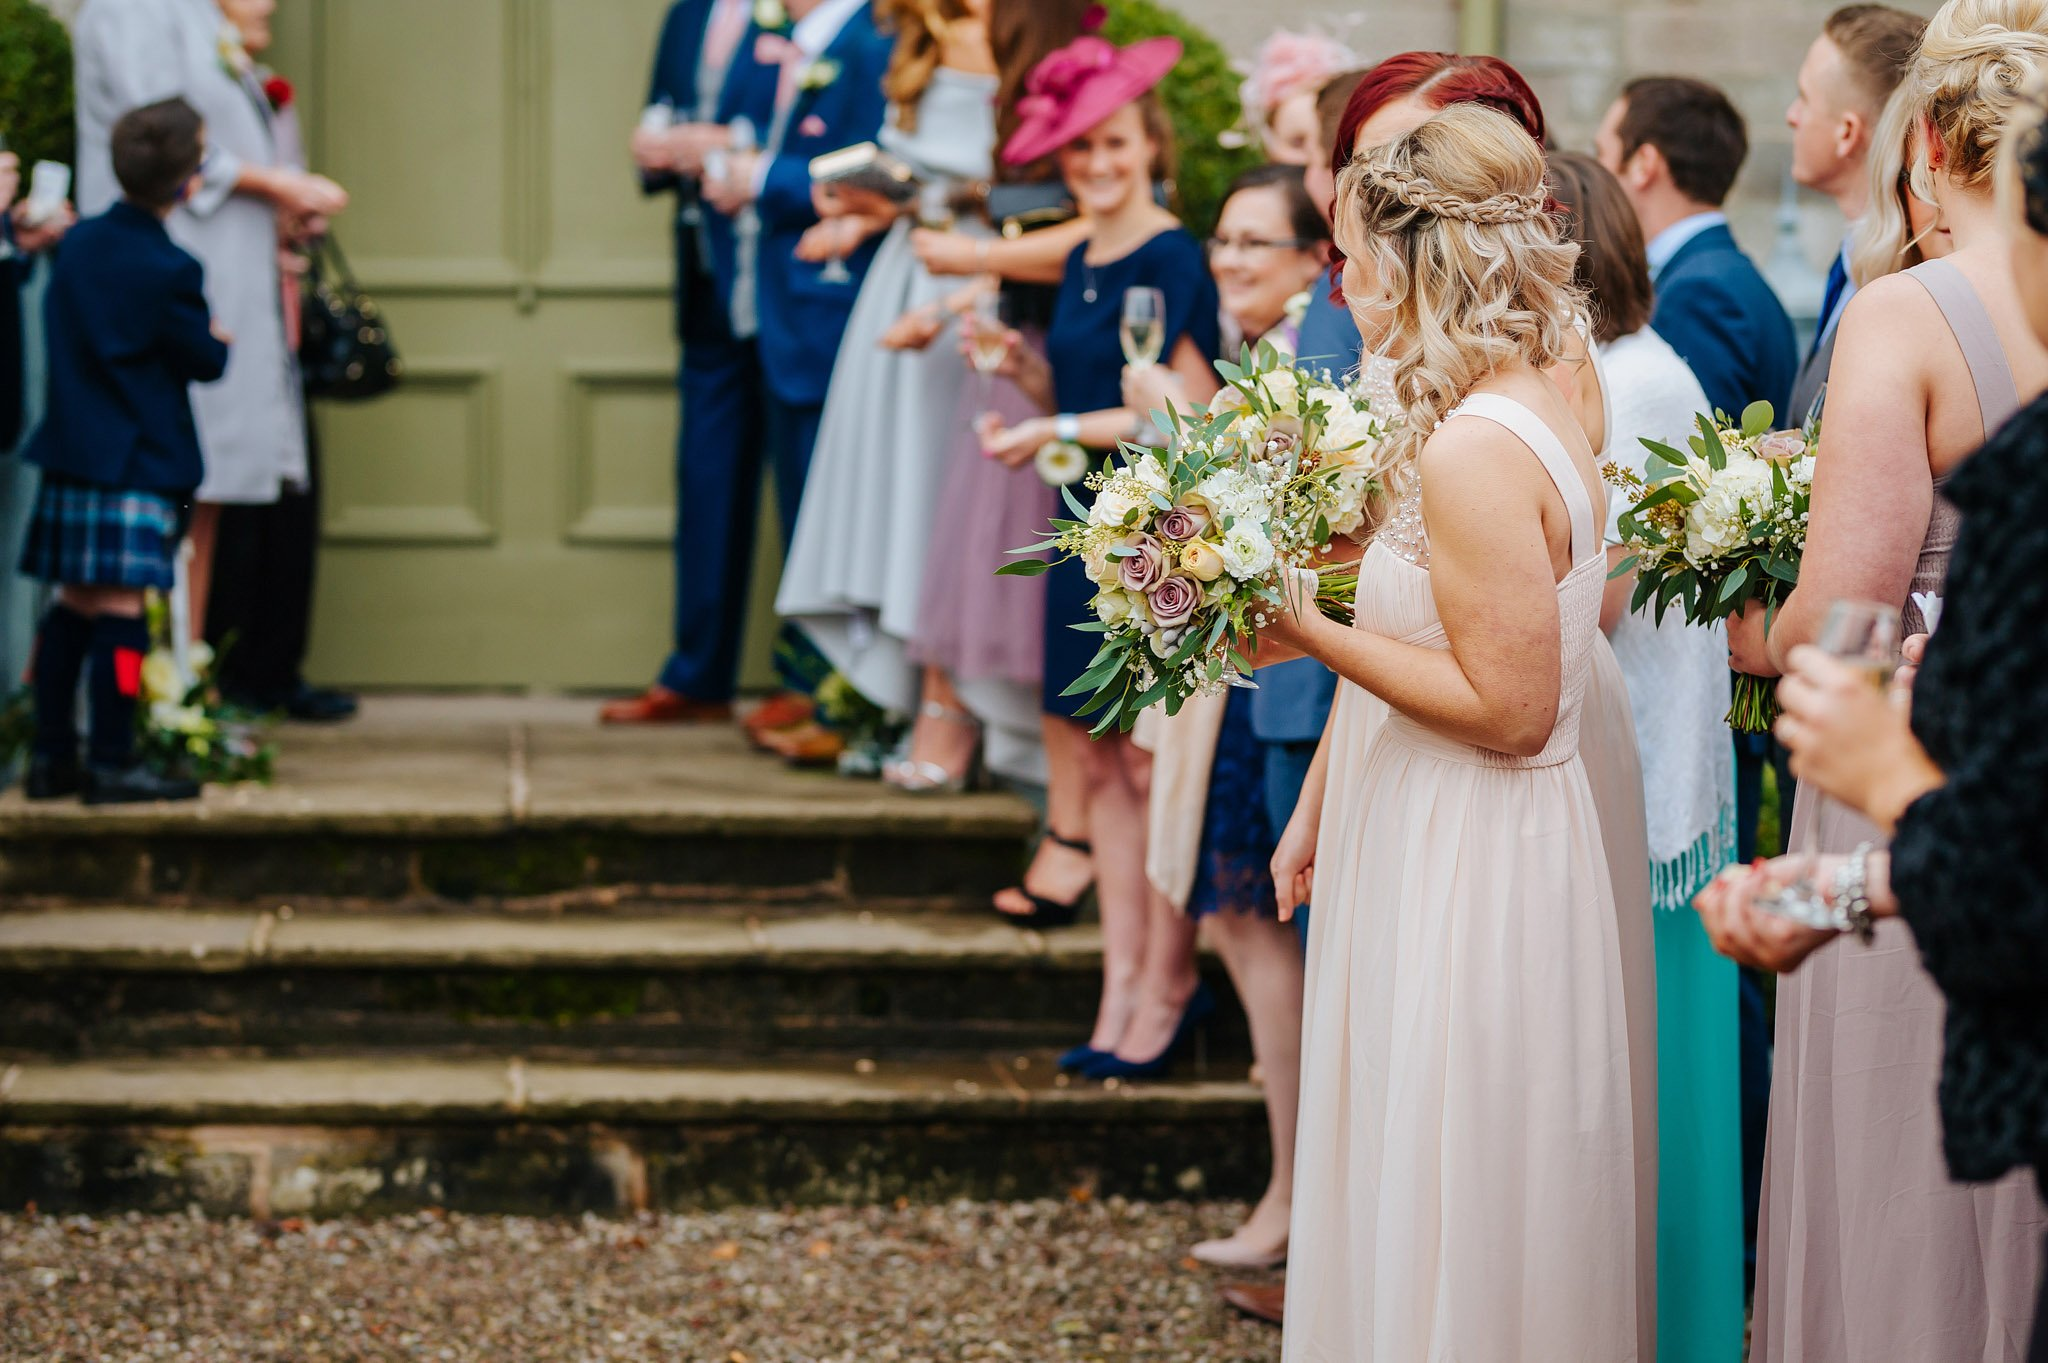 lemore manor wedding herefordshire 50 - Lemore Manor wedding, Herefordshire - West Midlands | Sadie + Ken